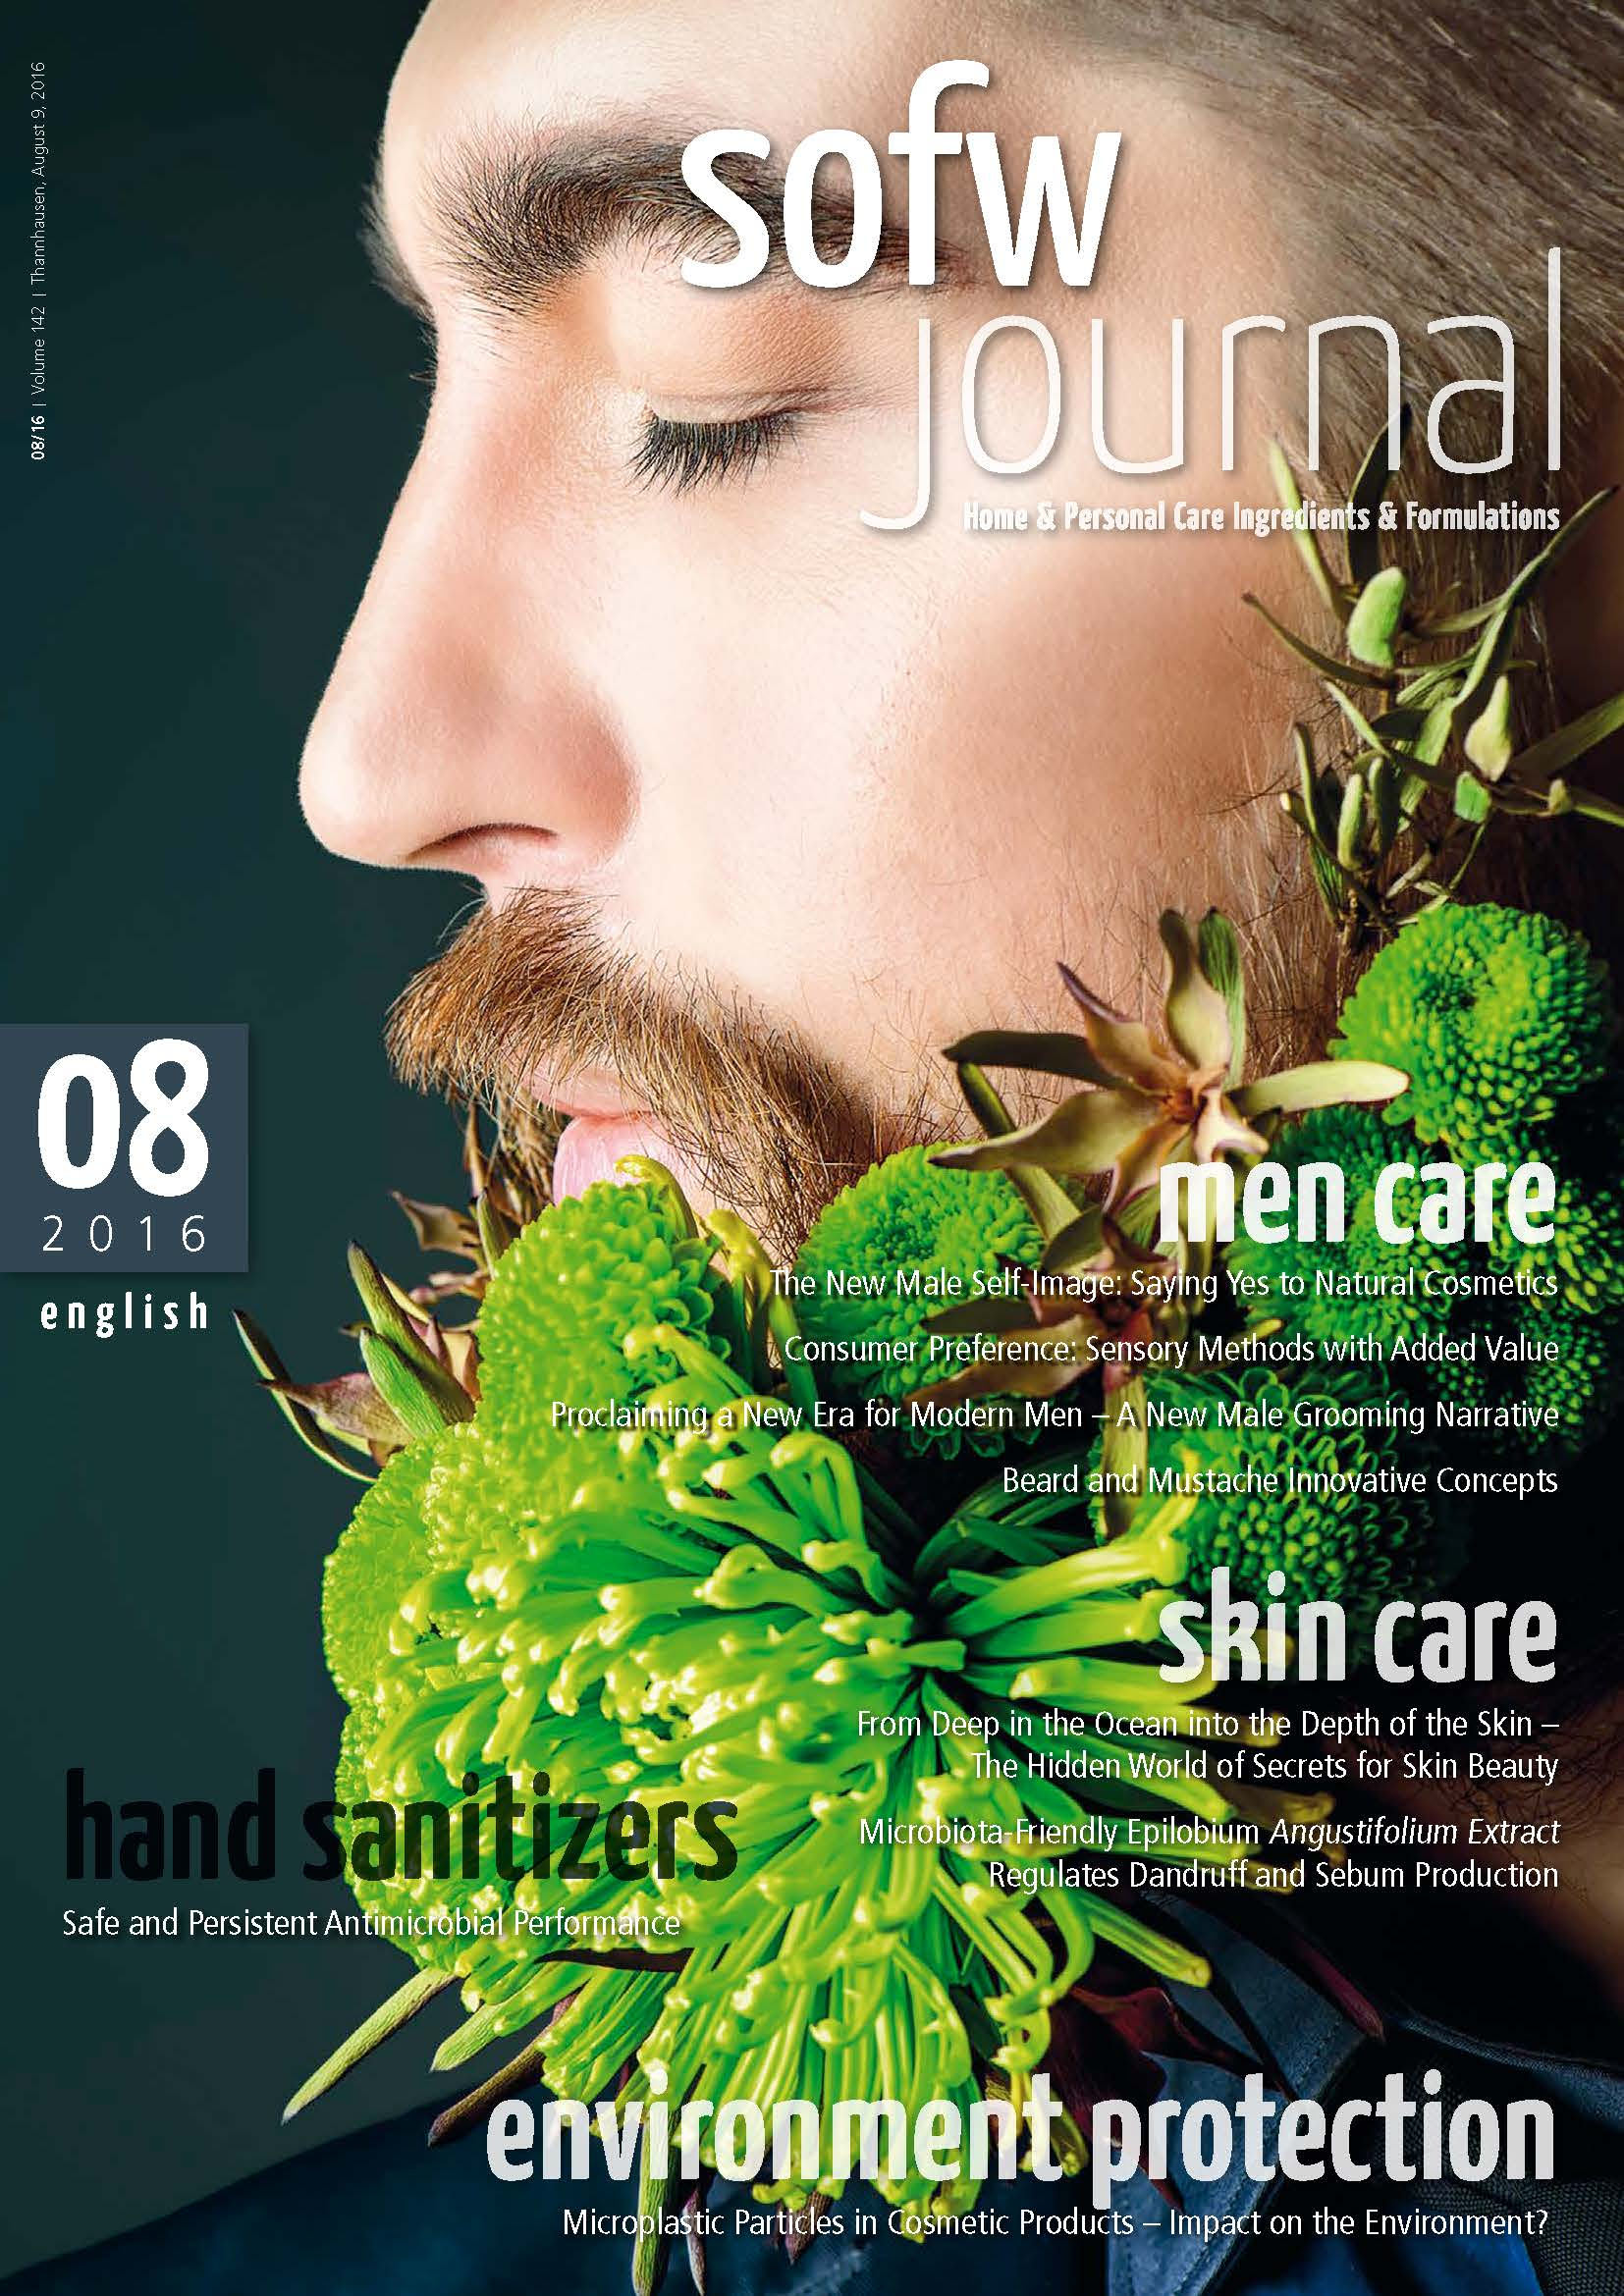 sofwjournal_en_2016_08_cover